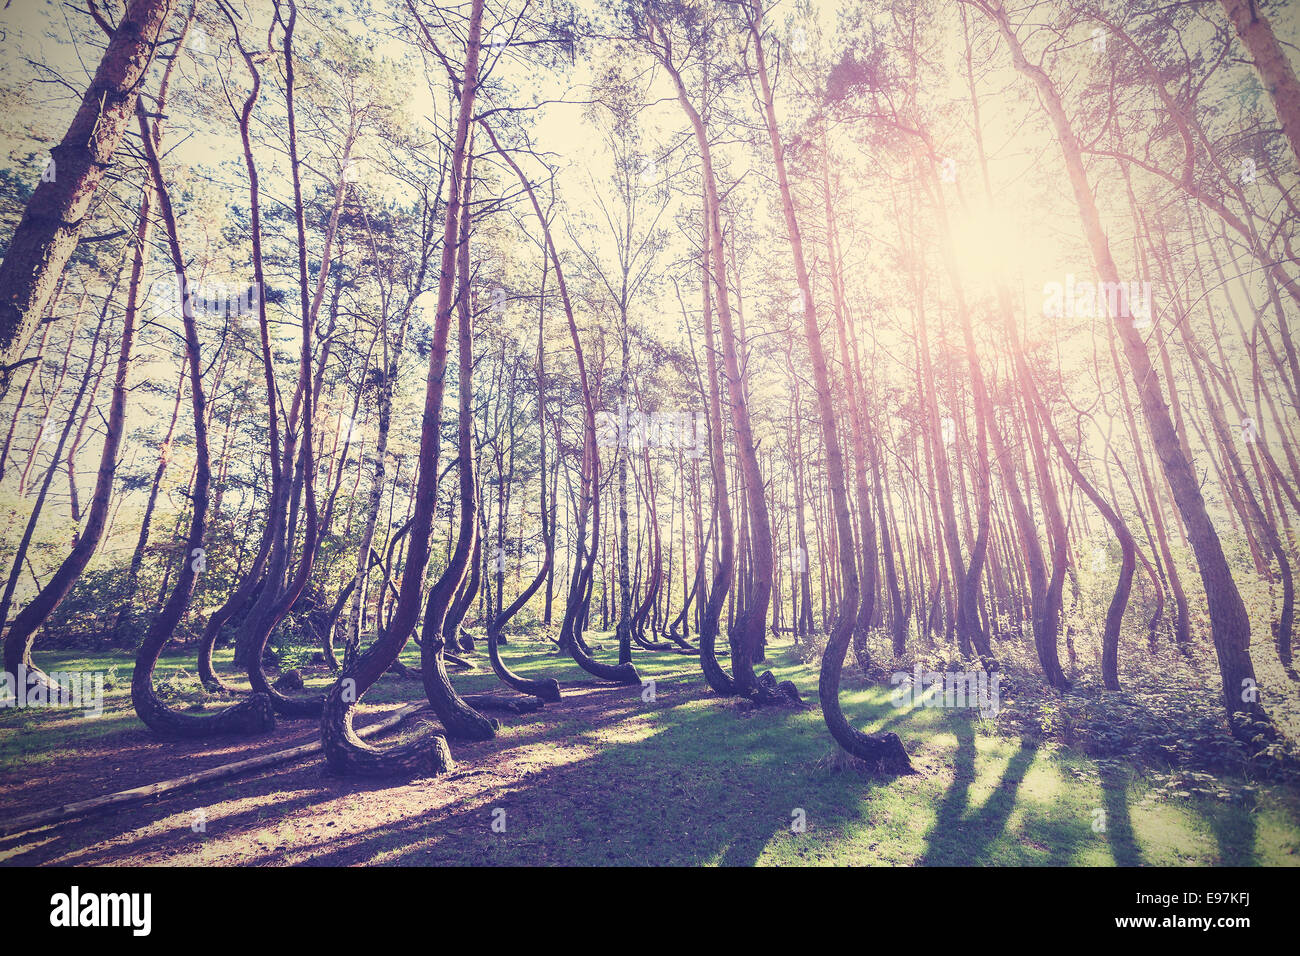 Vintage style picture of Crooked Forest, Gryfino in Poland. - Stock Image